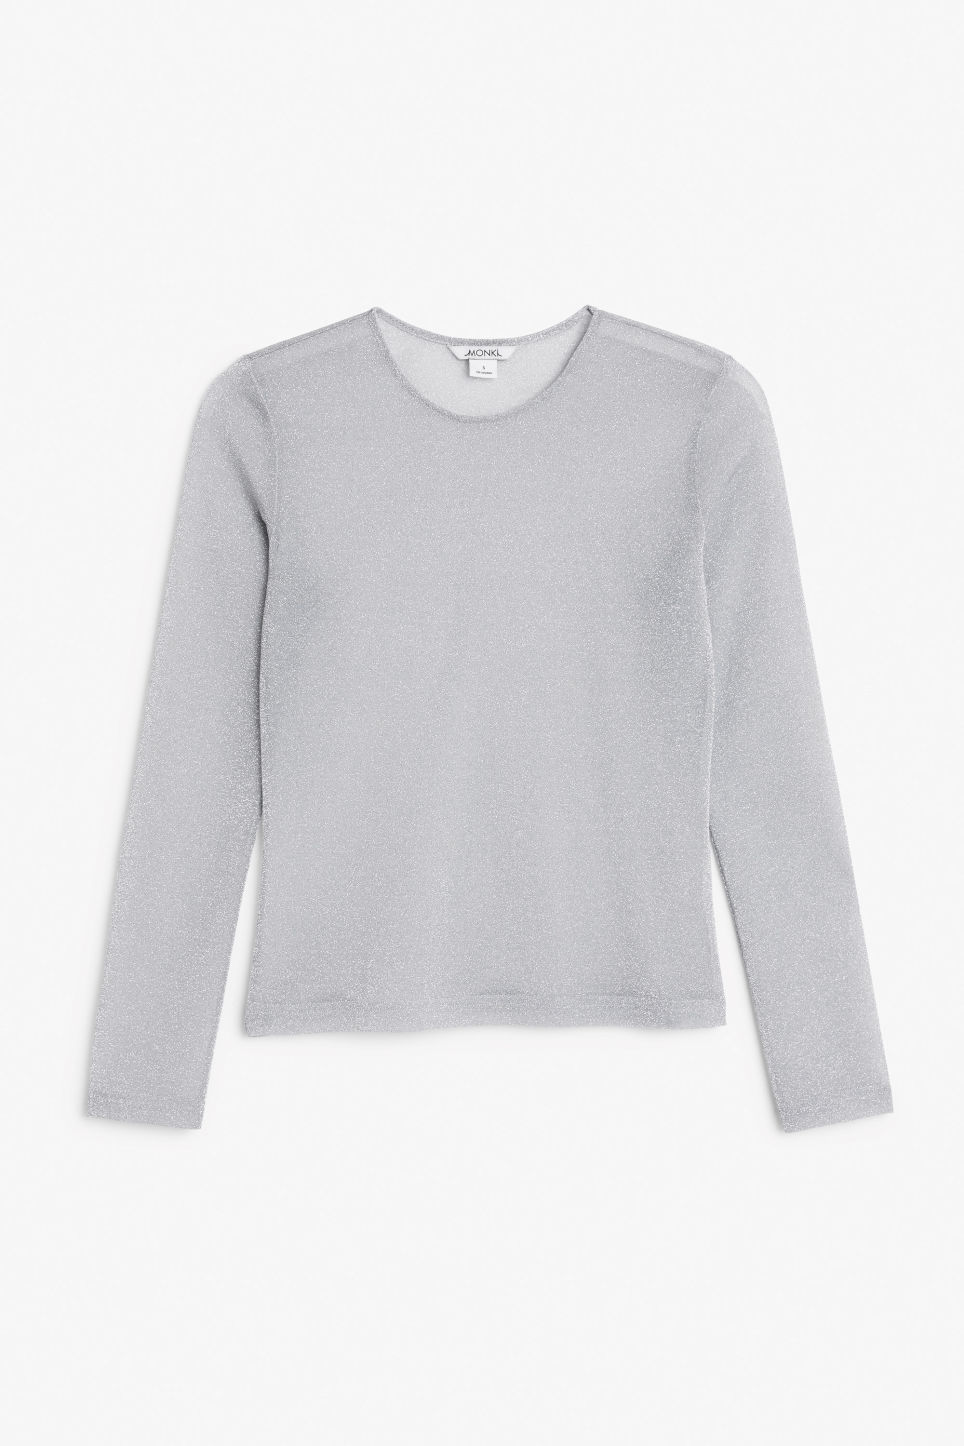 Front image of Monki metallic fitted top in silver